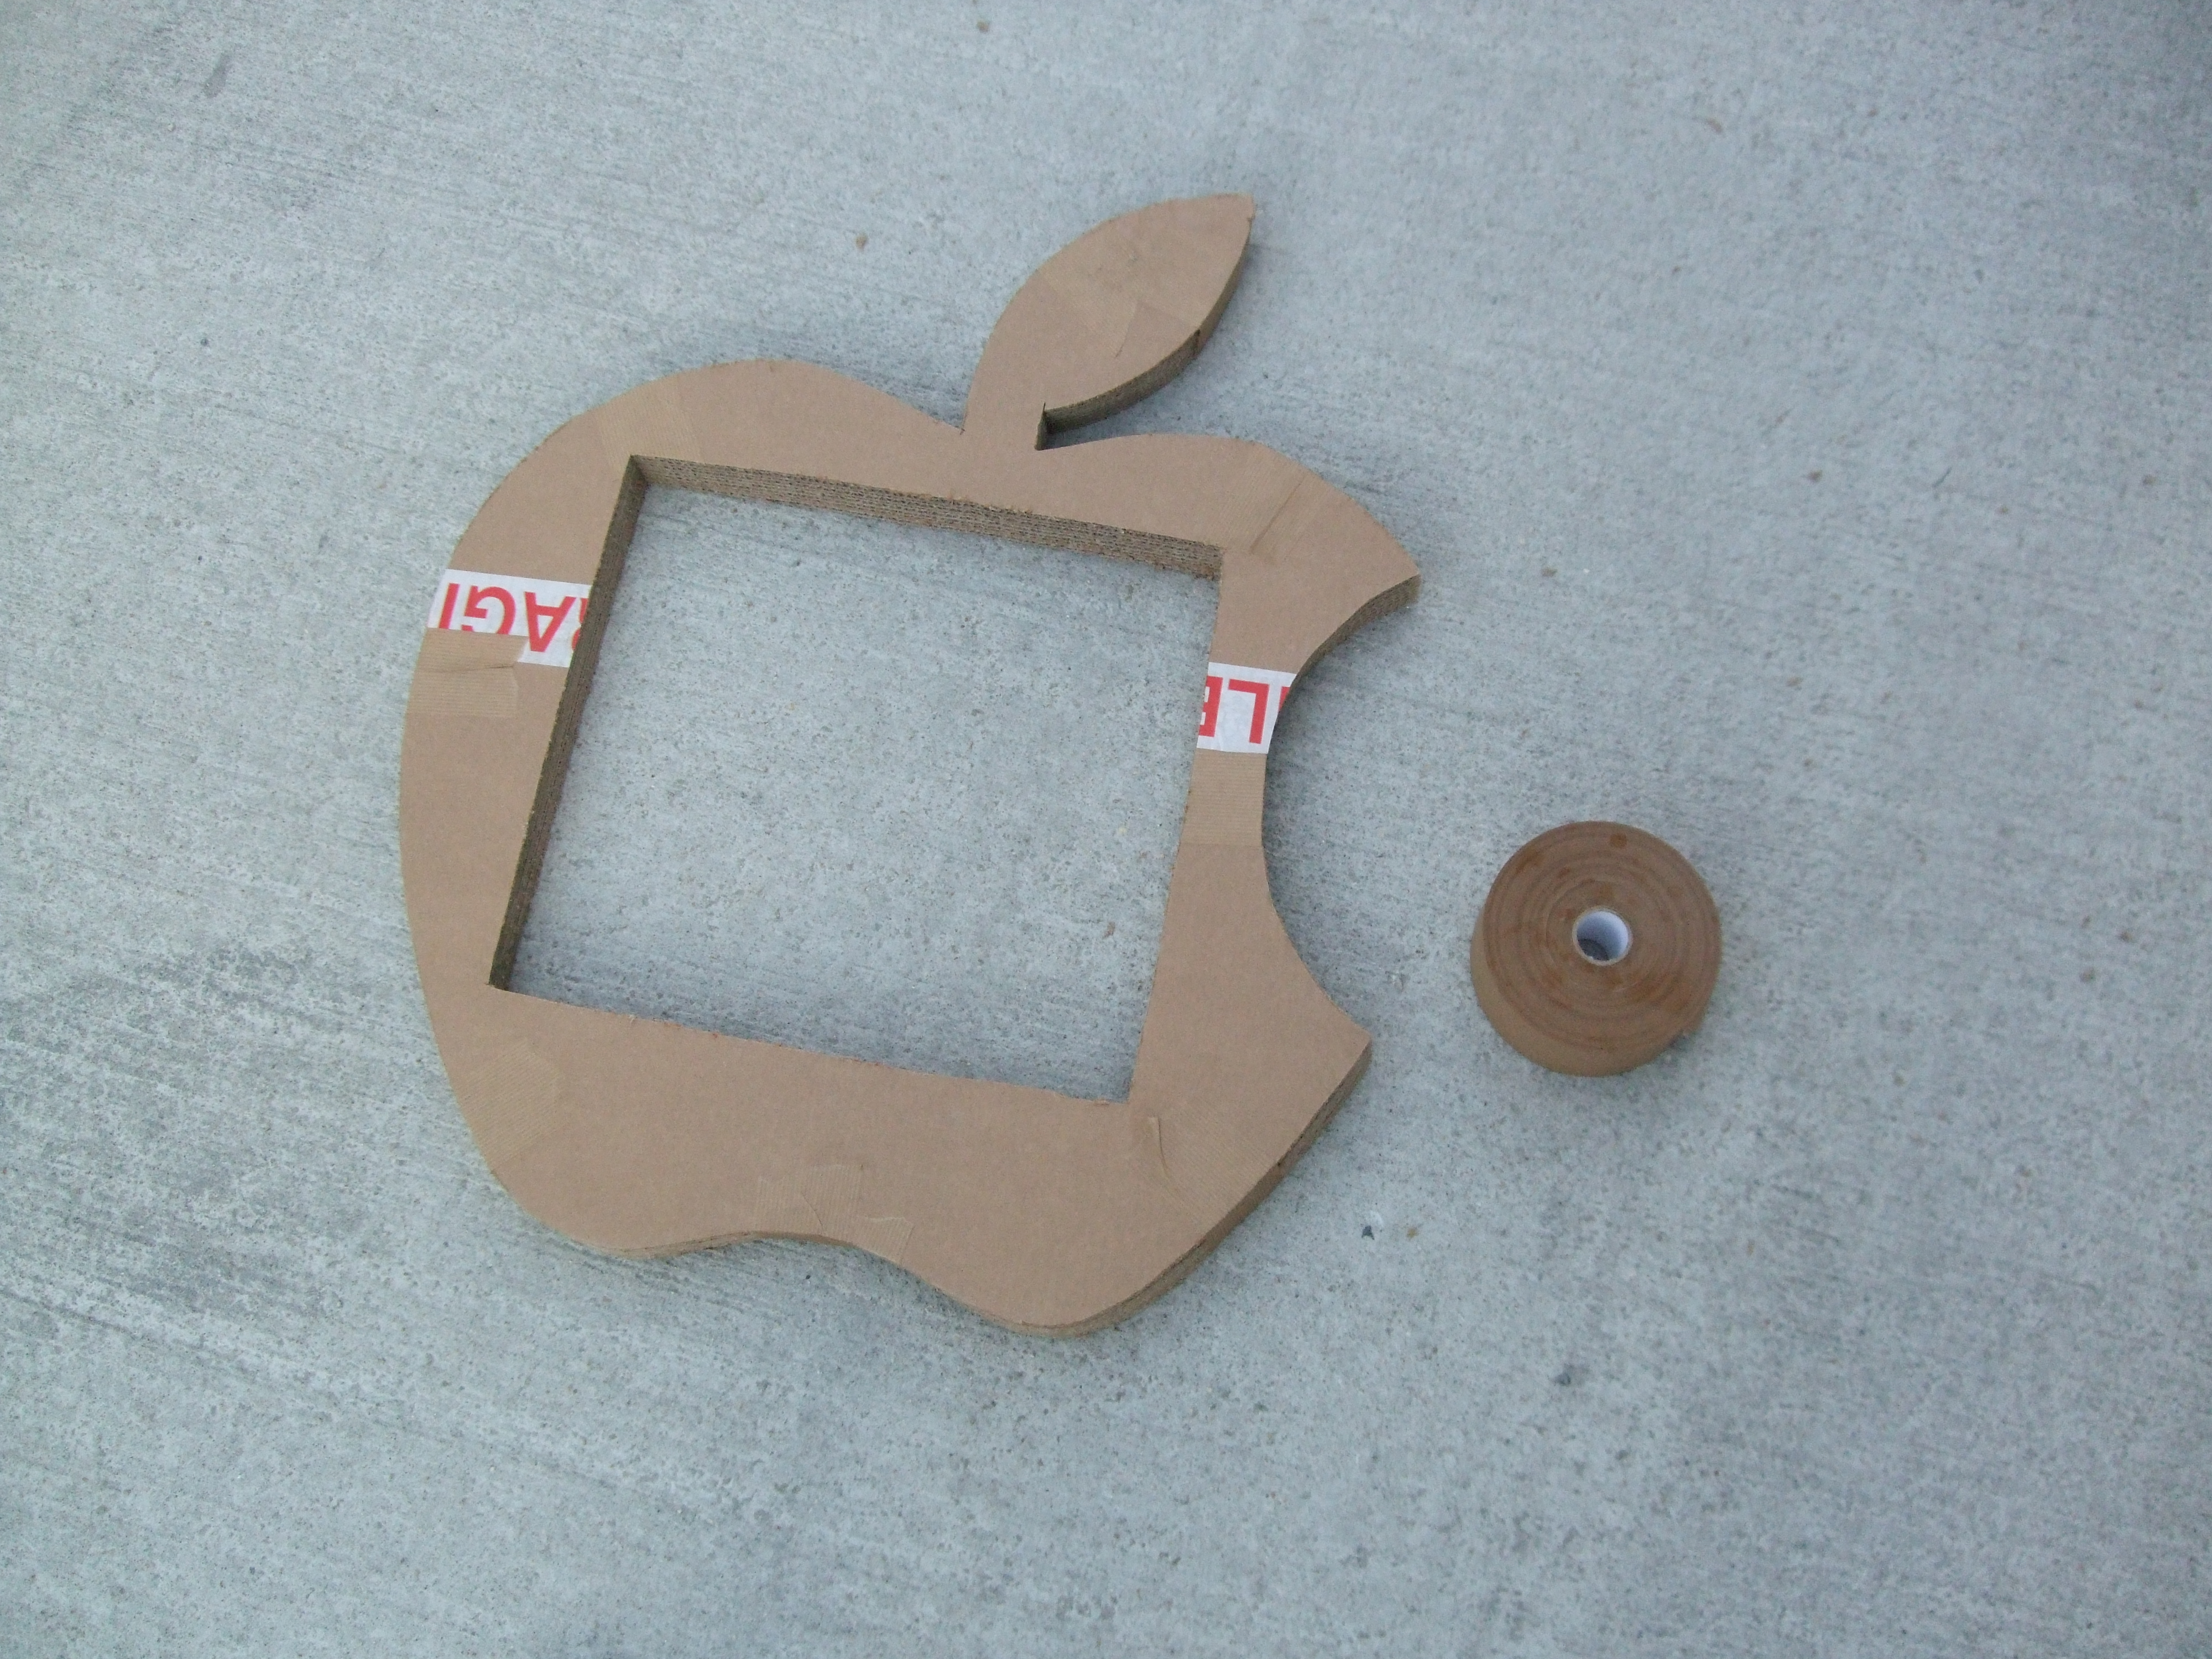 Picture of The Apple's Pattern and Cut of the Slices